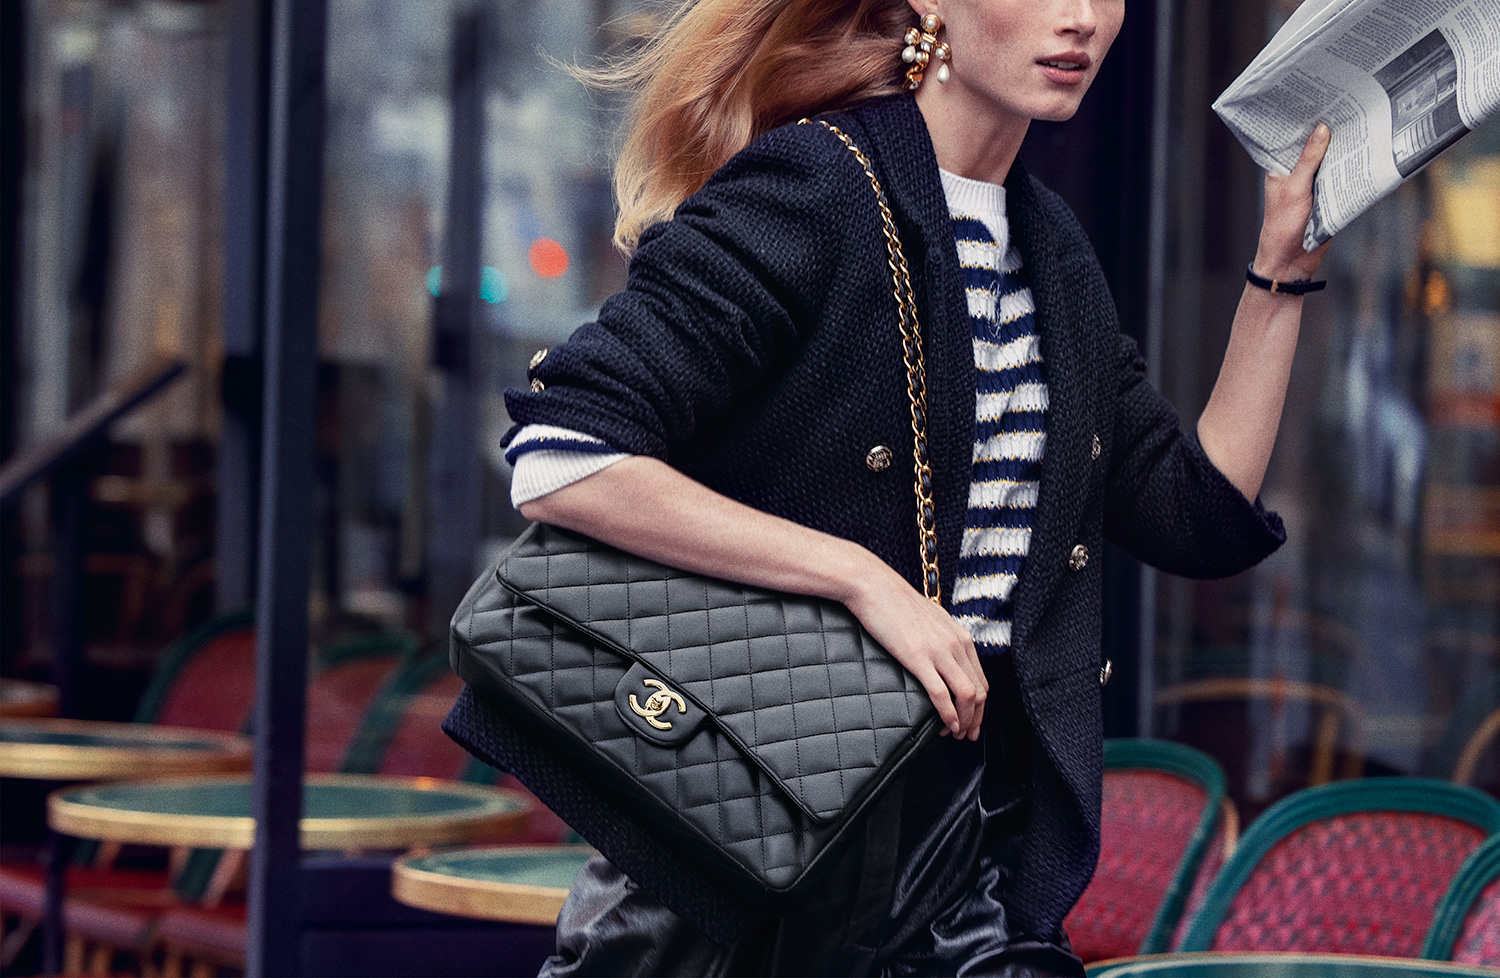 THE CHANEL ICONIC – THE SAVOIR-FAIRE